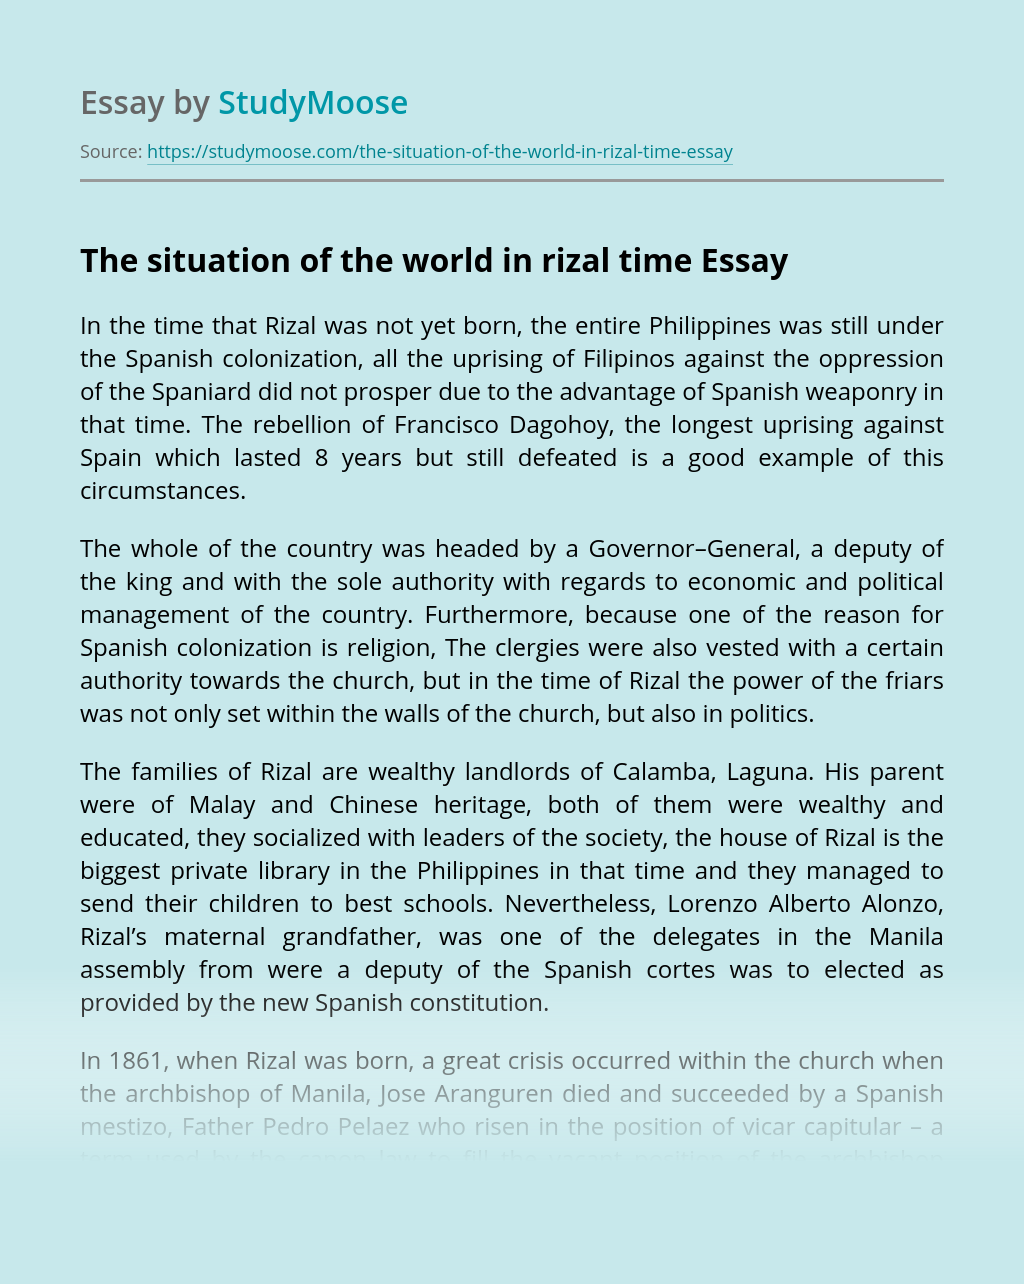 The situation of the world in rizal time